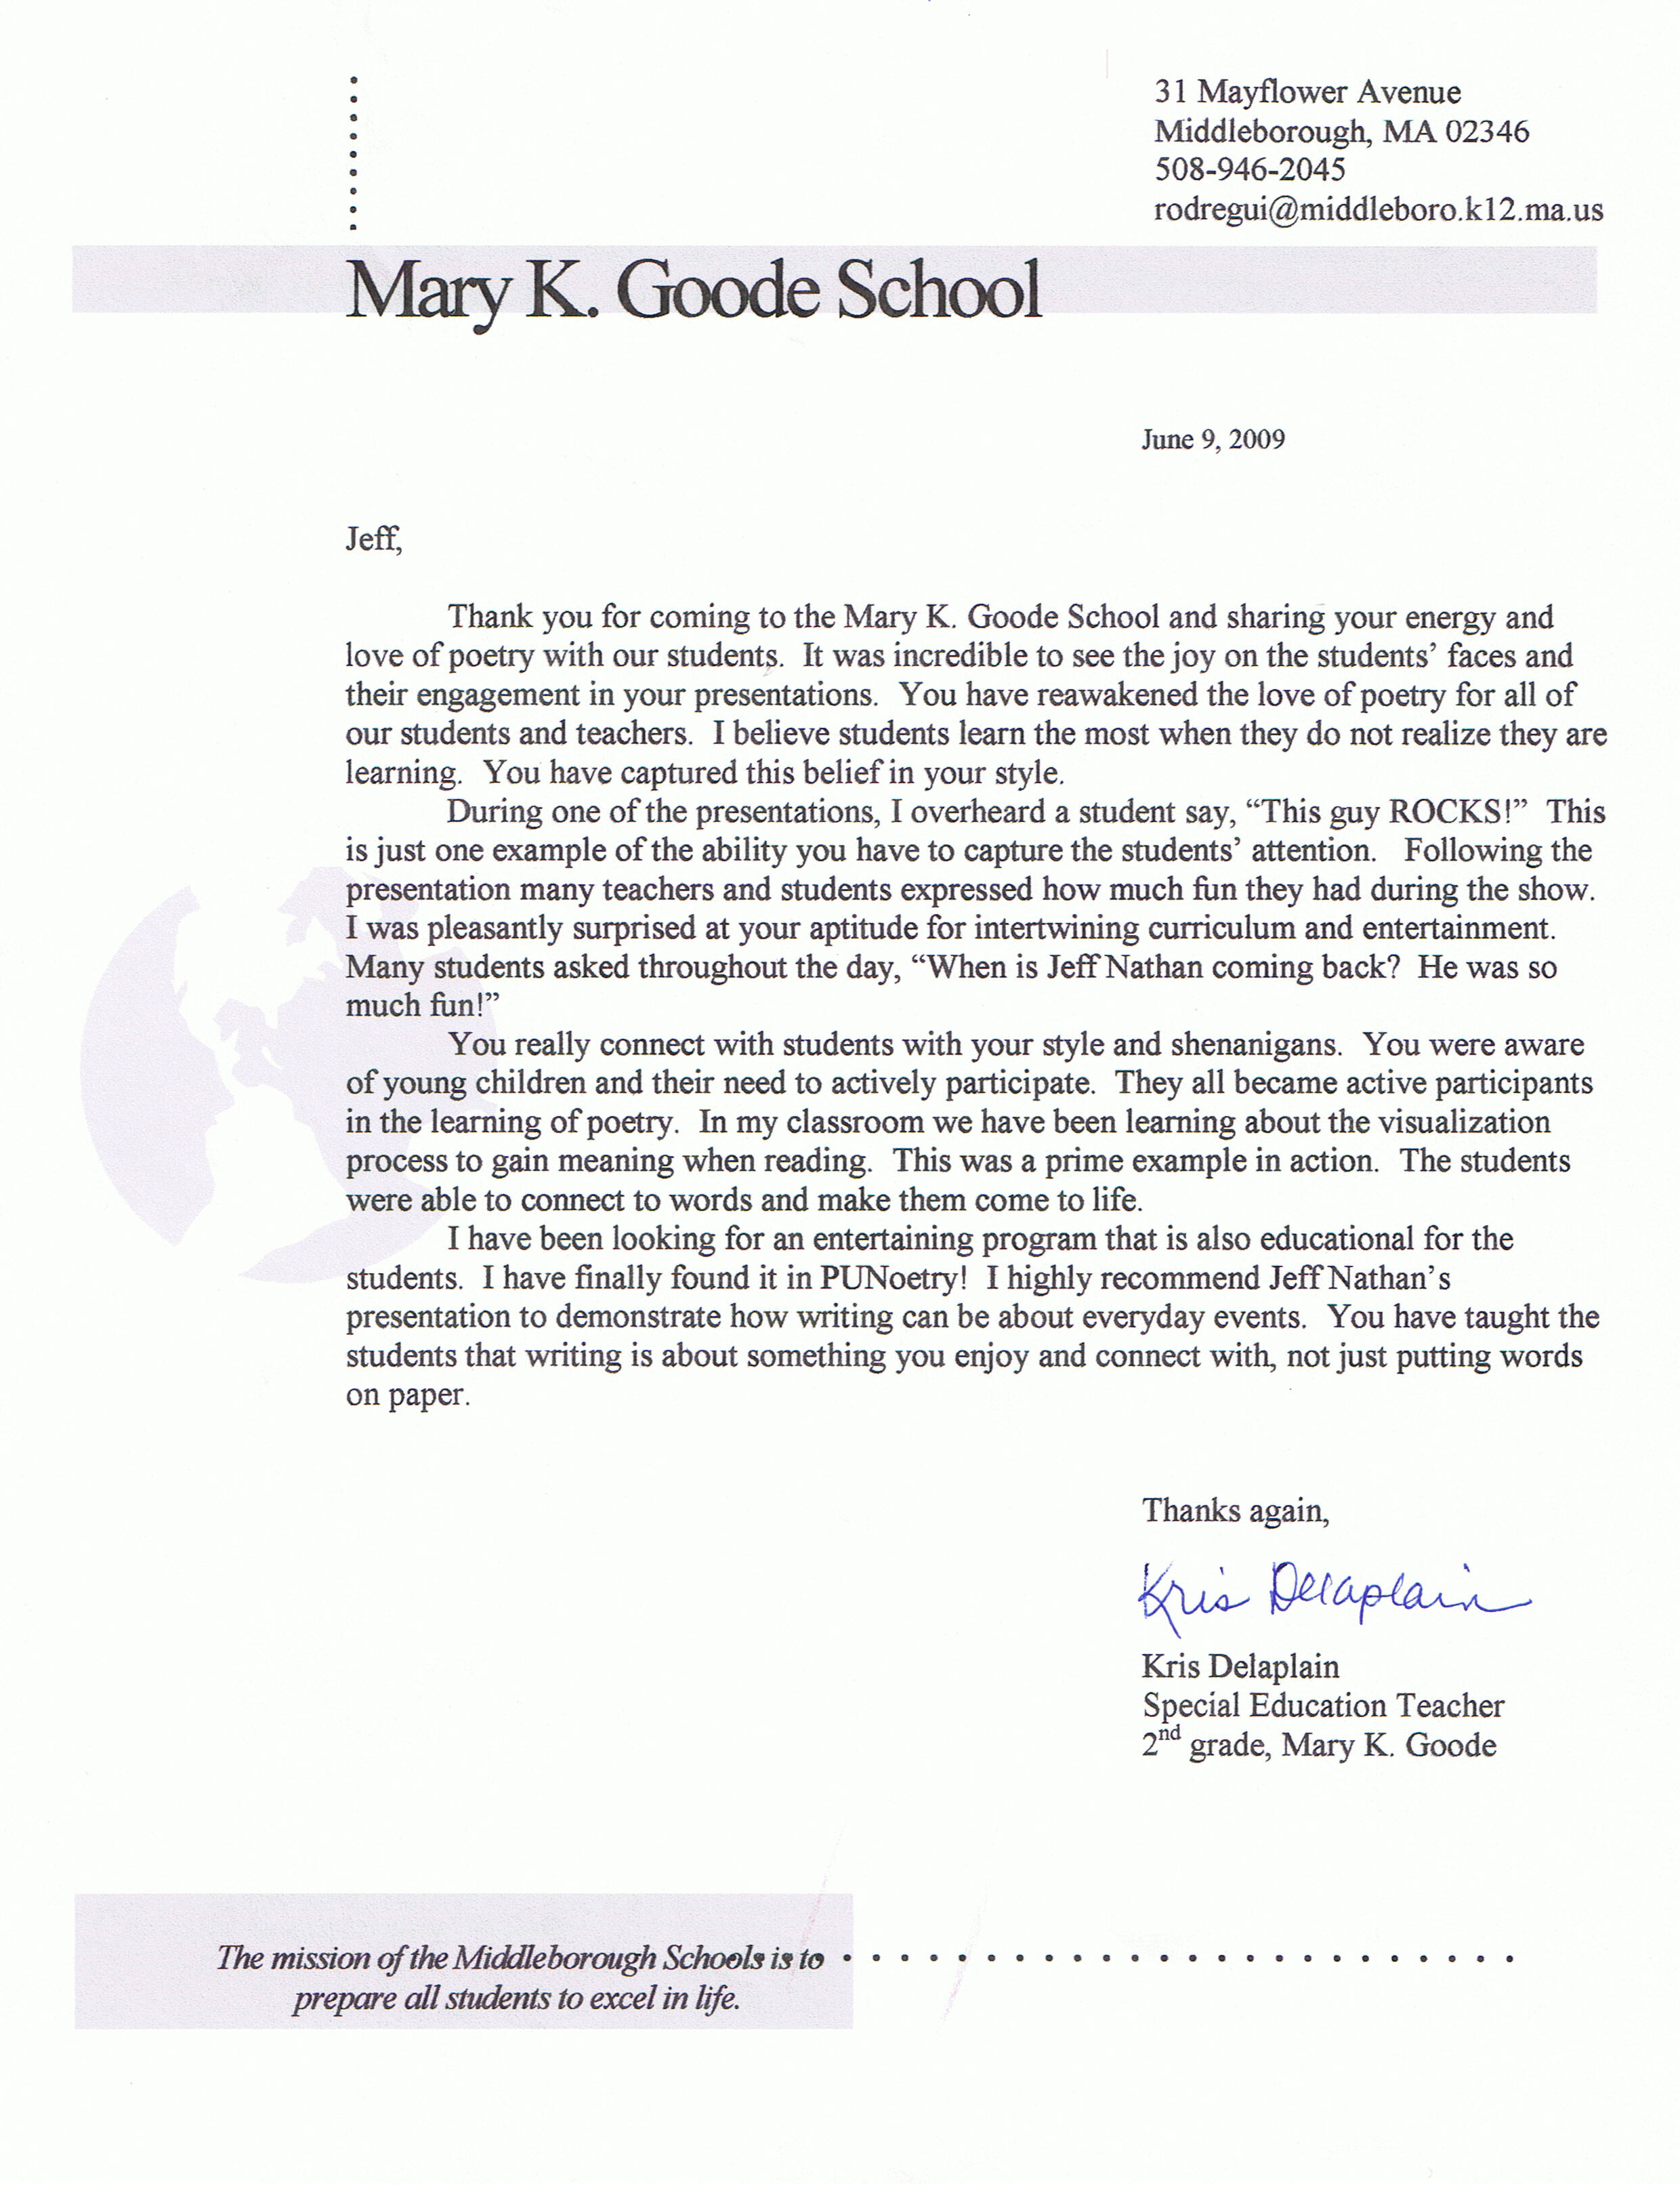 Elementary School Reading Specialist Cover Letter